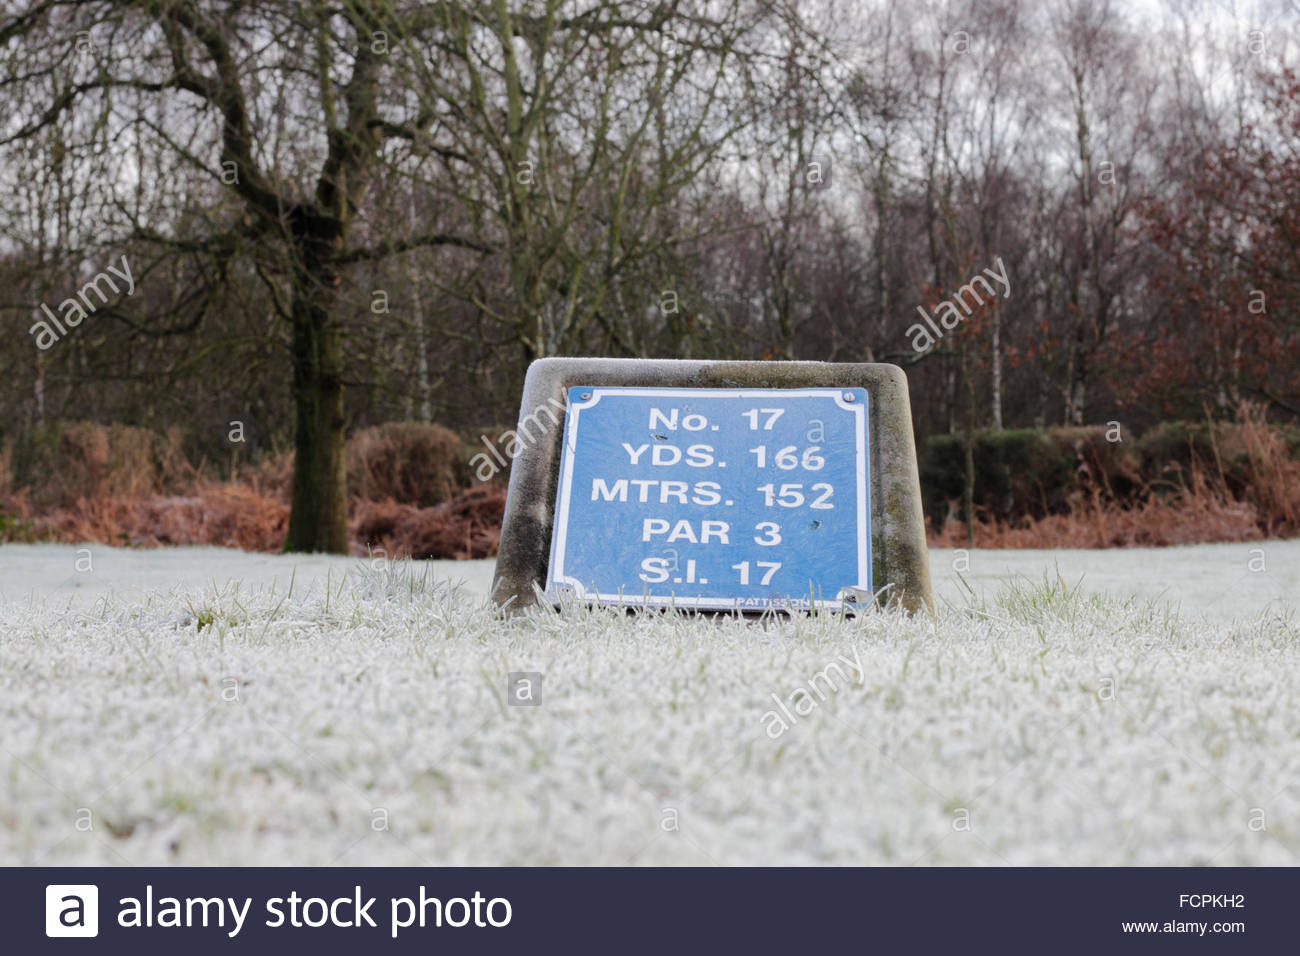 Frost Covered Golf Course Tee Marker, Sutton Coldfield Golf Club, UK. - Stock Image